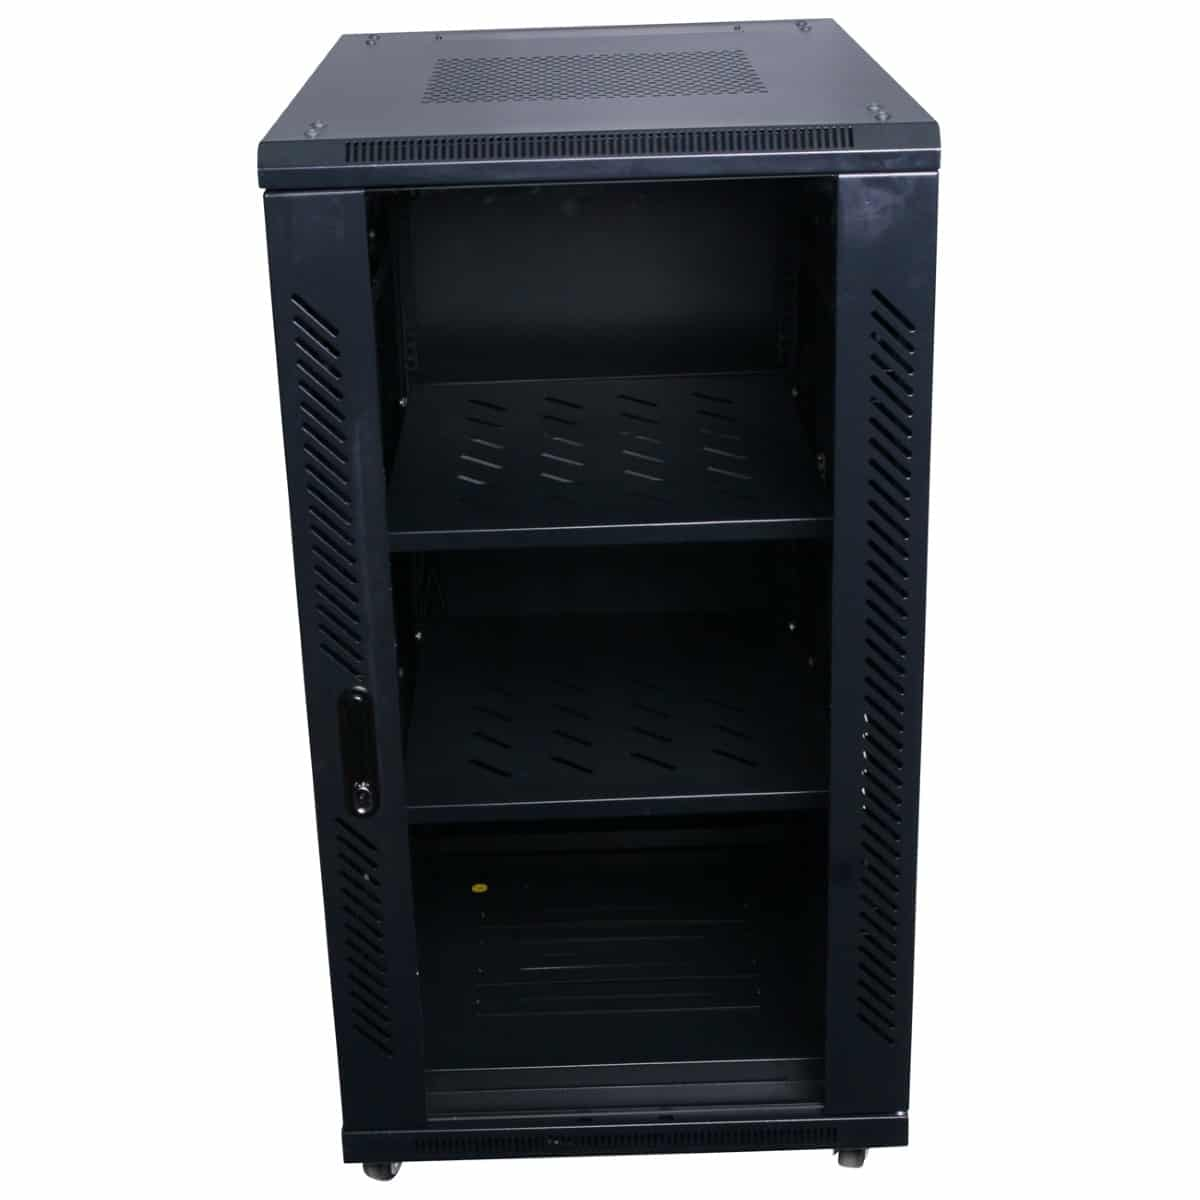 22RU 1000mm Deep X 600mm Wide Rack Cabinet